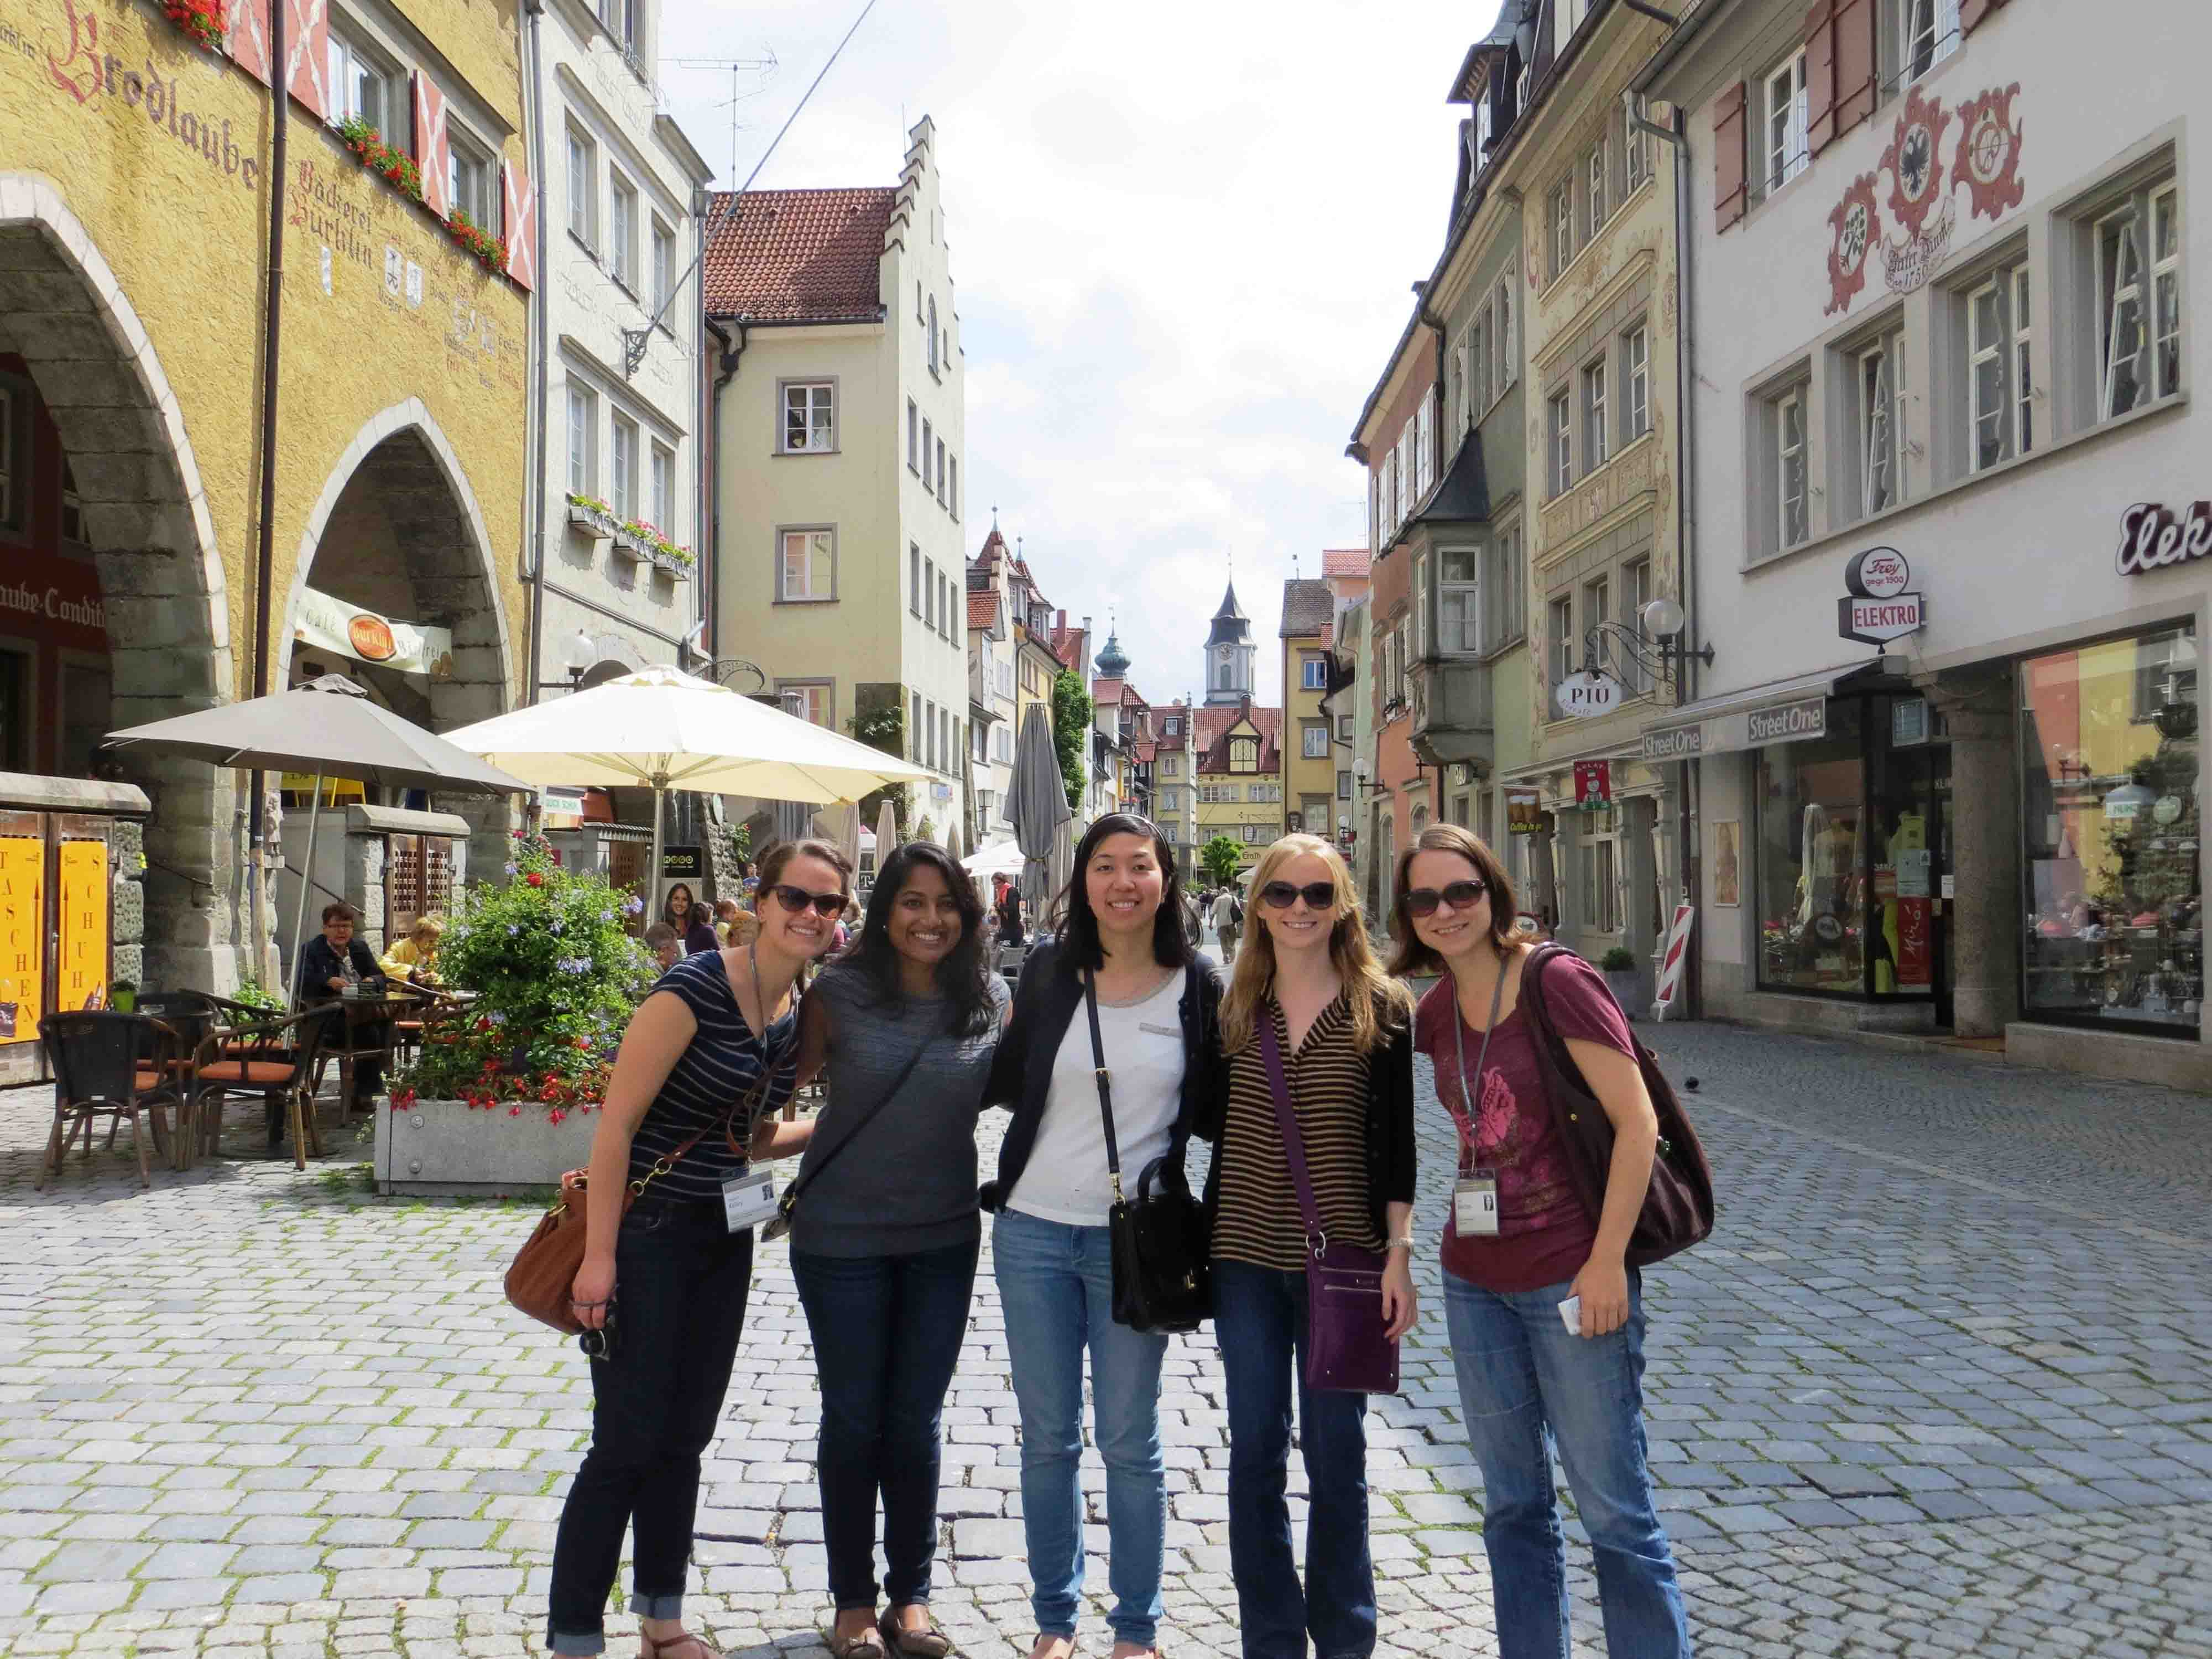 U.S. researchers explore the island city of Lindau, Germany.